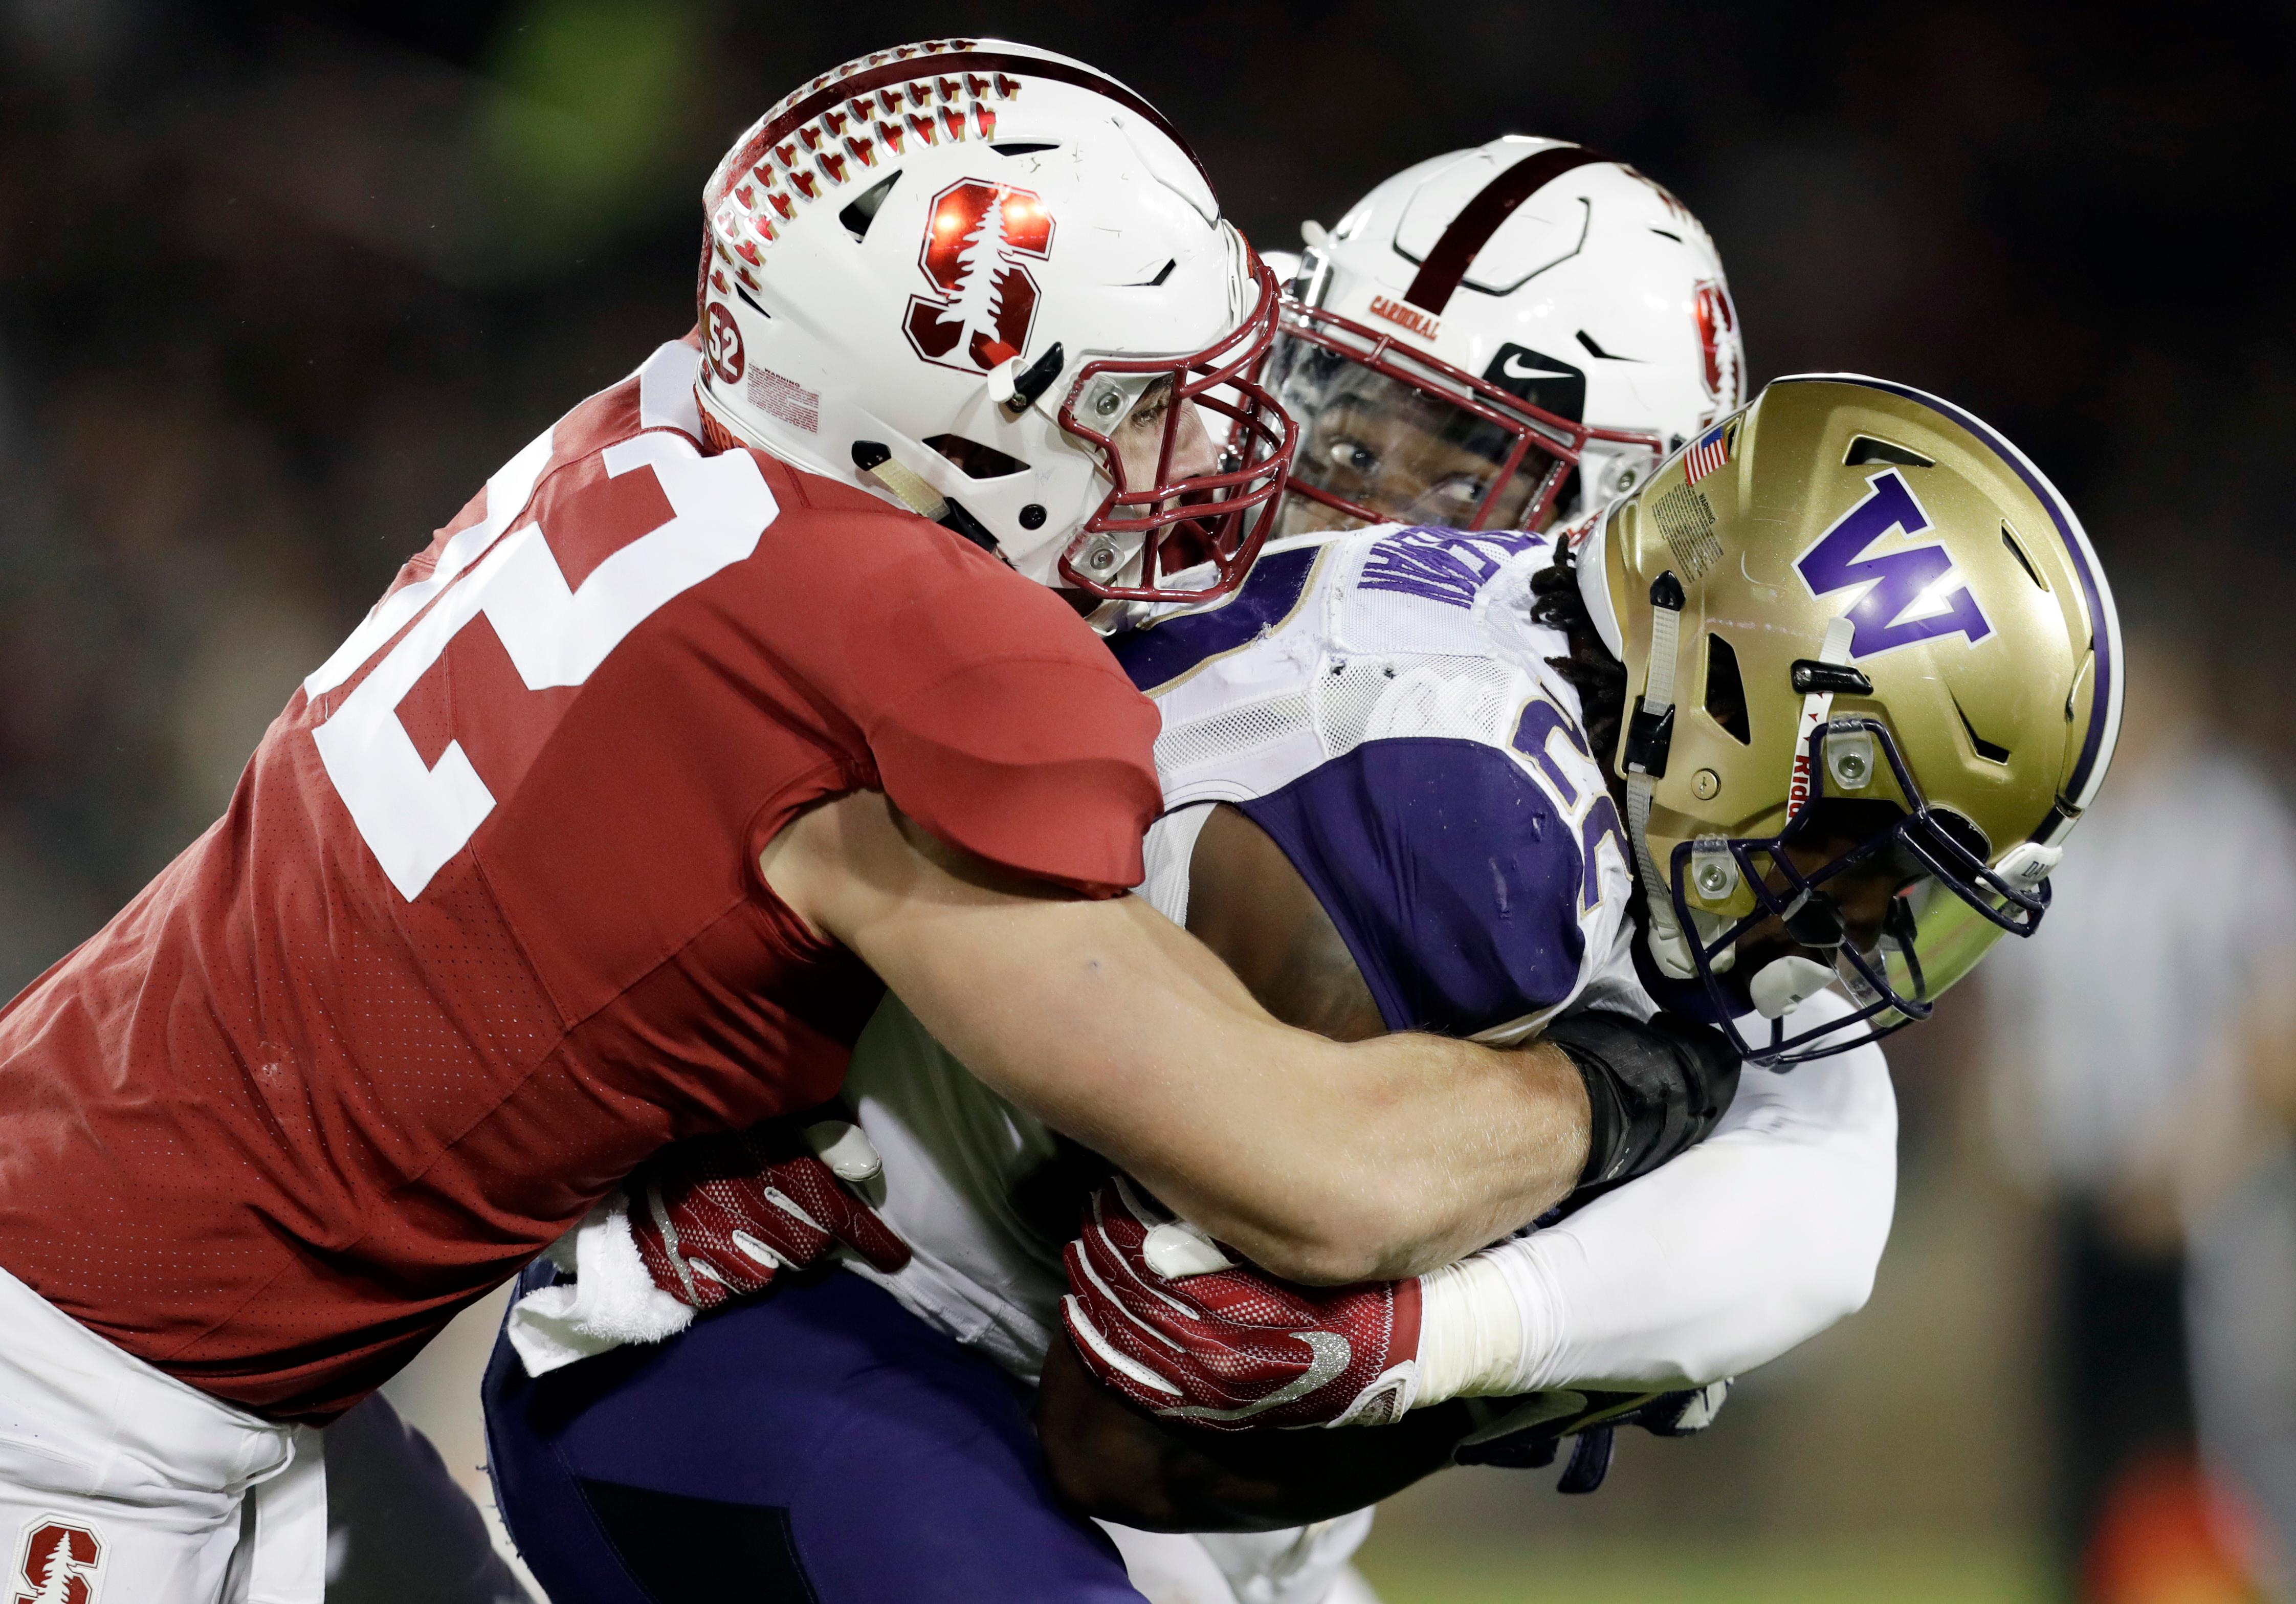 Washington running back Lavon Coleman, right, is tackled by Stanford cornerback Alameen Murphy, center, and linebacker Casey Toohill (52) during the first half of an NCAA college football game Friday, Nov. 10, 2017, in Stanford, Calif. (AP Photo/Marcio Jose Sanchez)